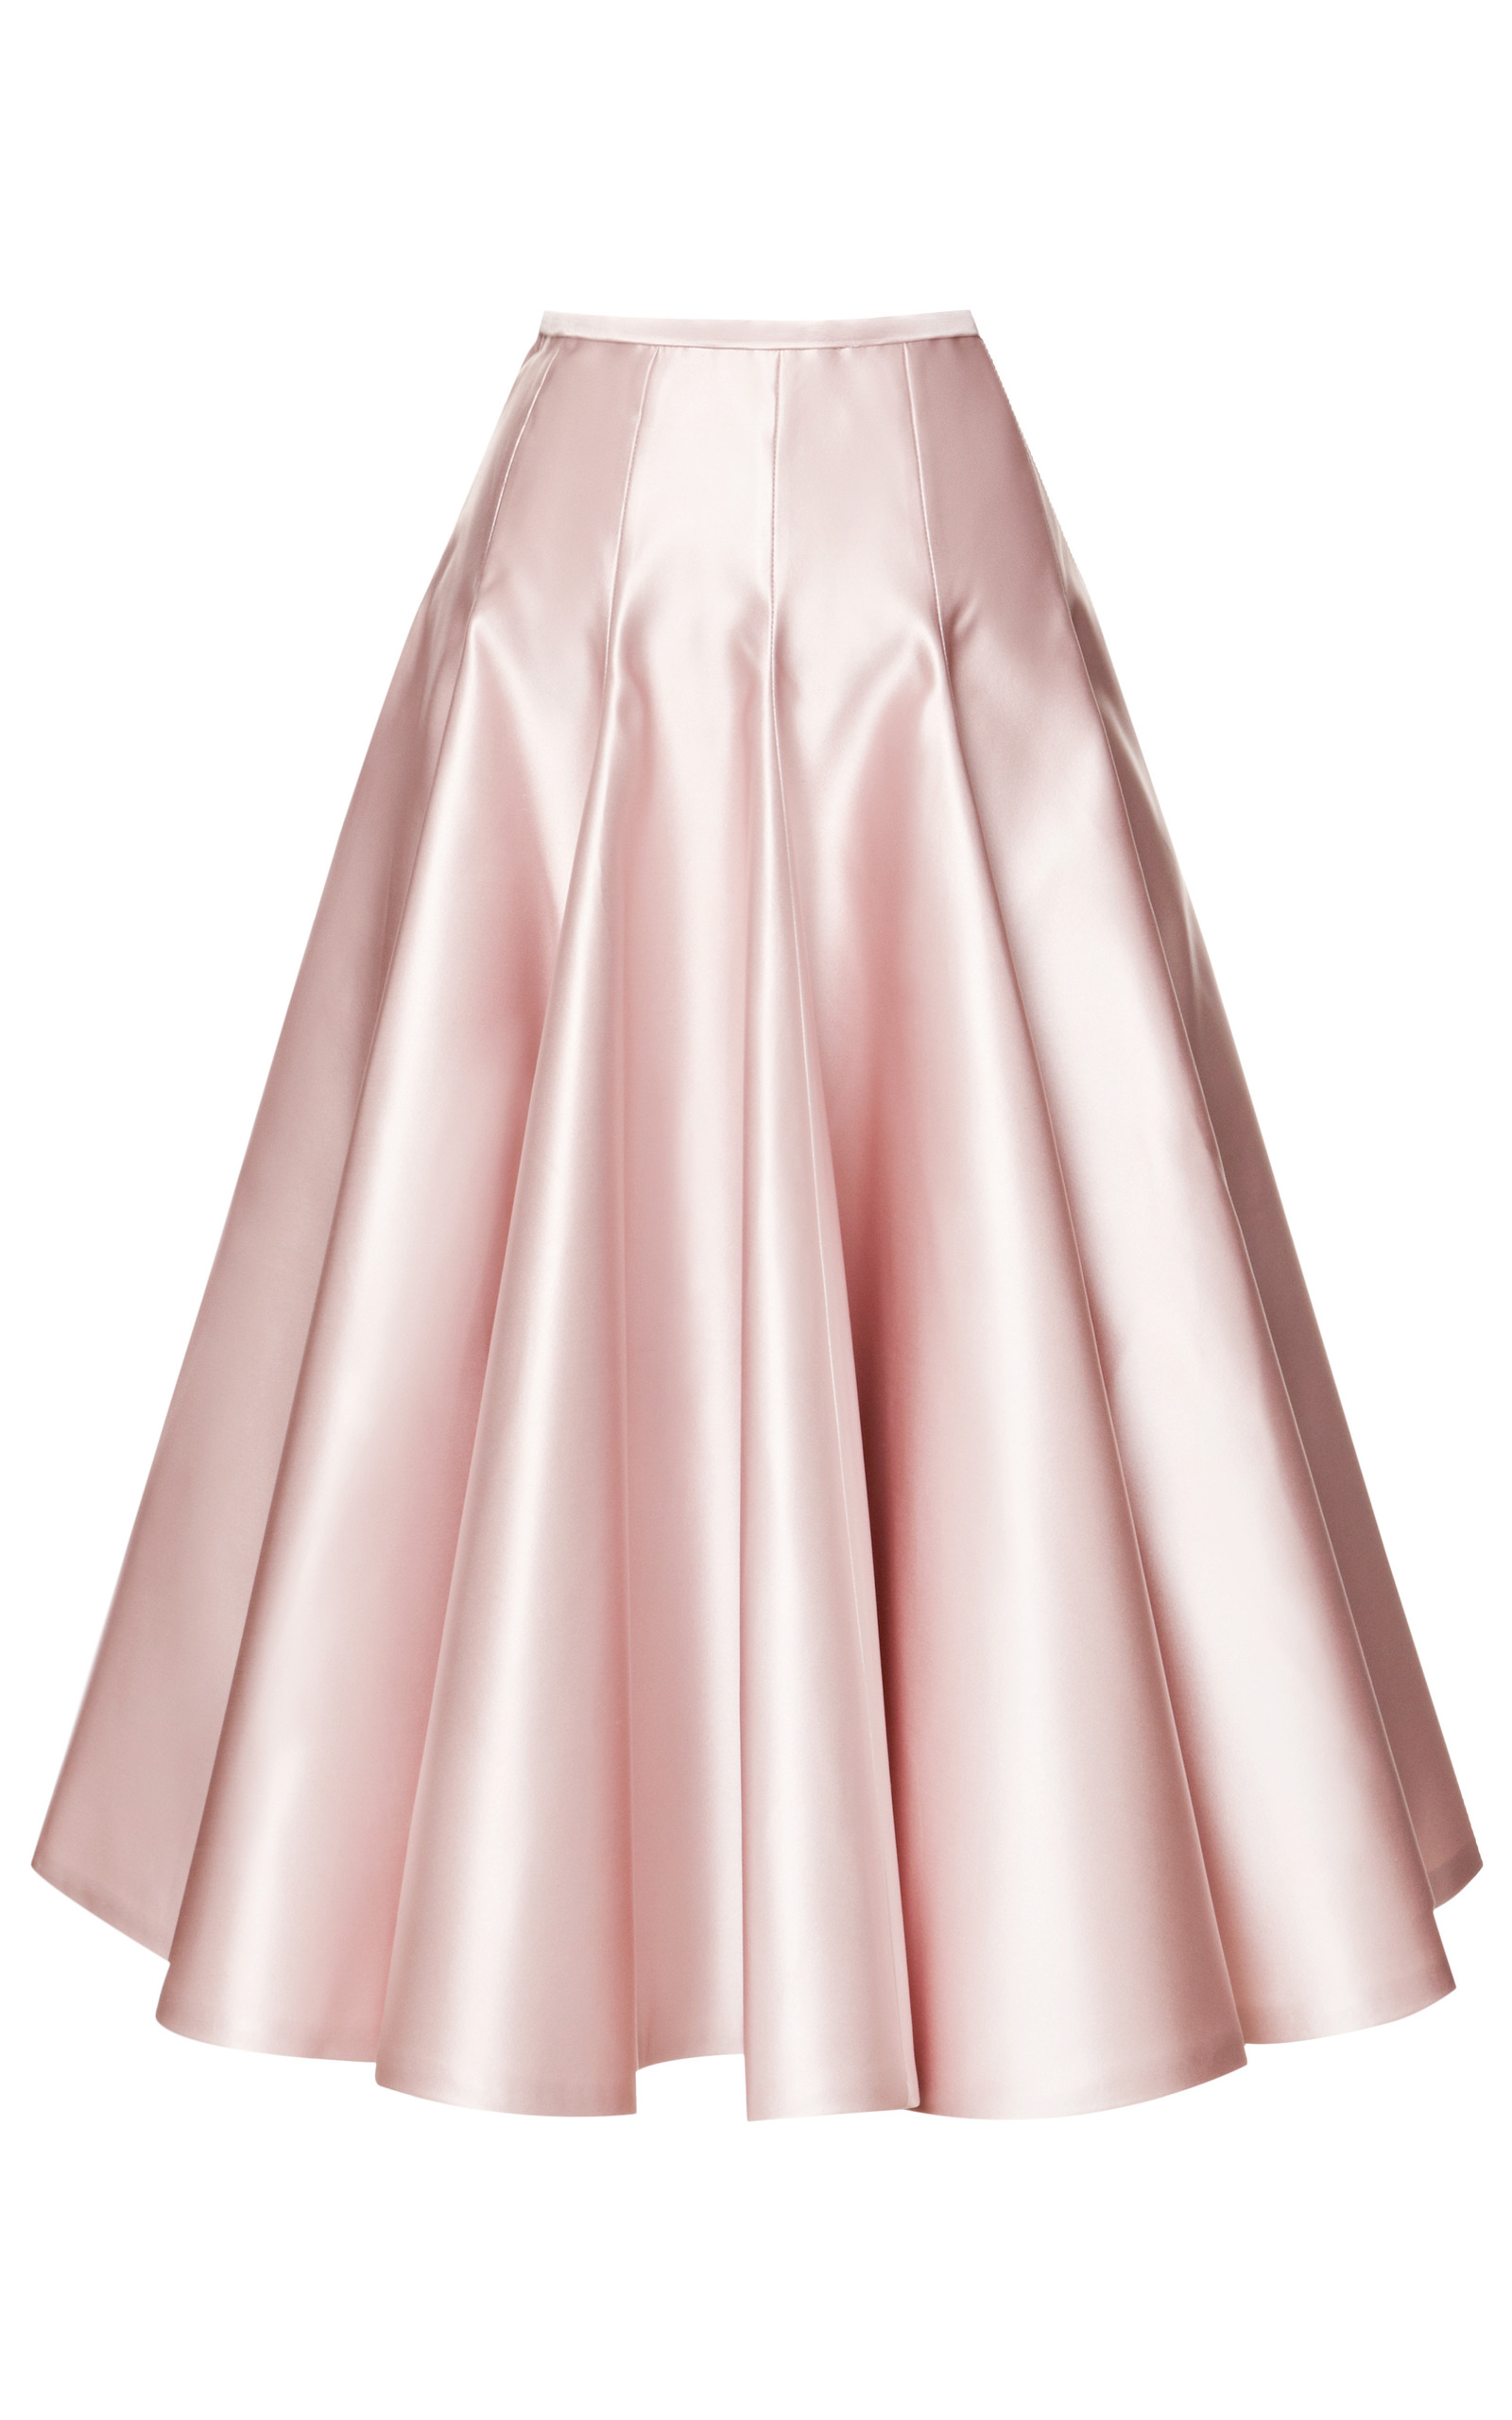 Duchesse Satin A-Line Skirt by Rochas